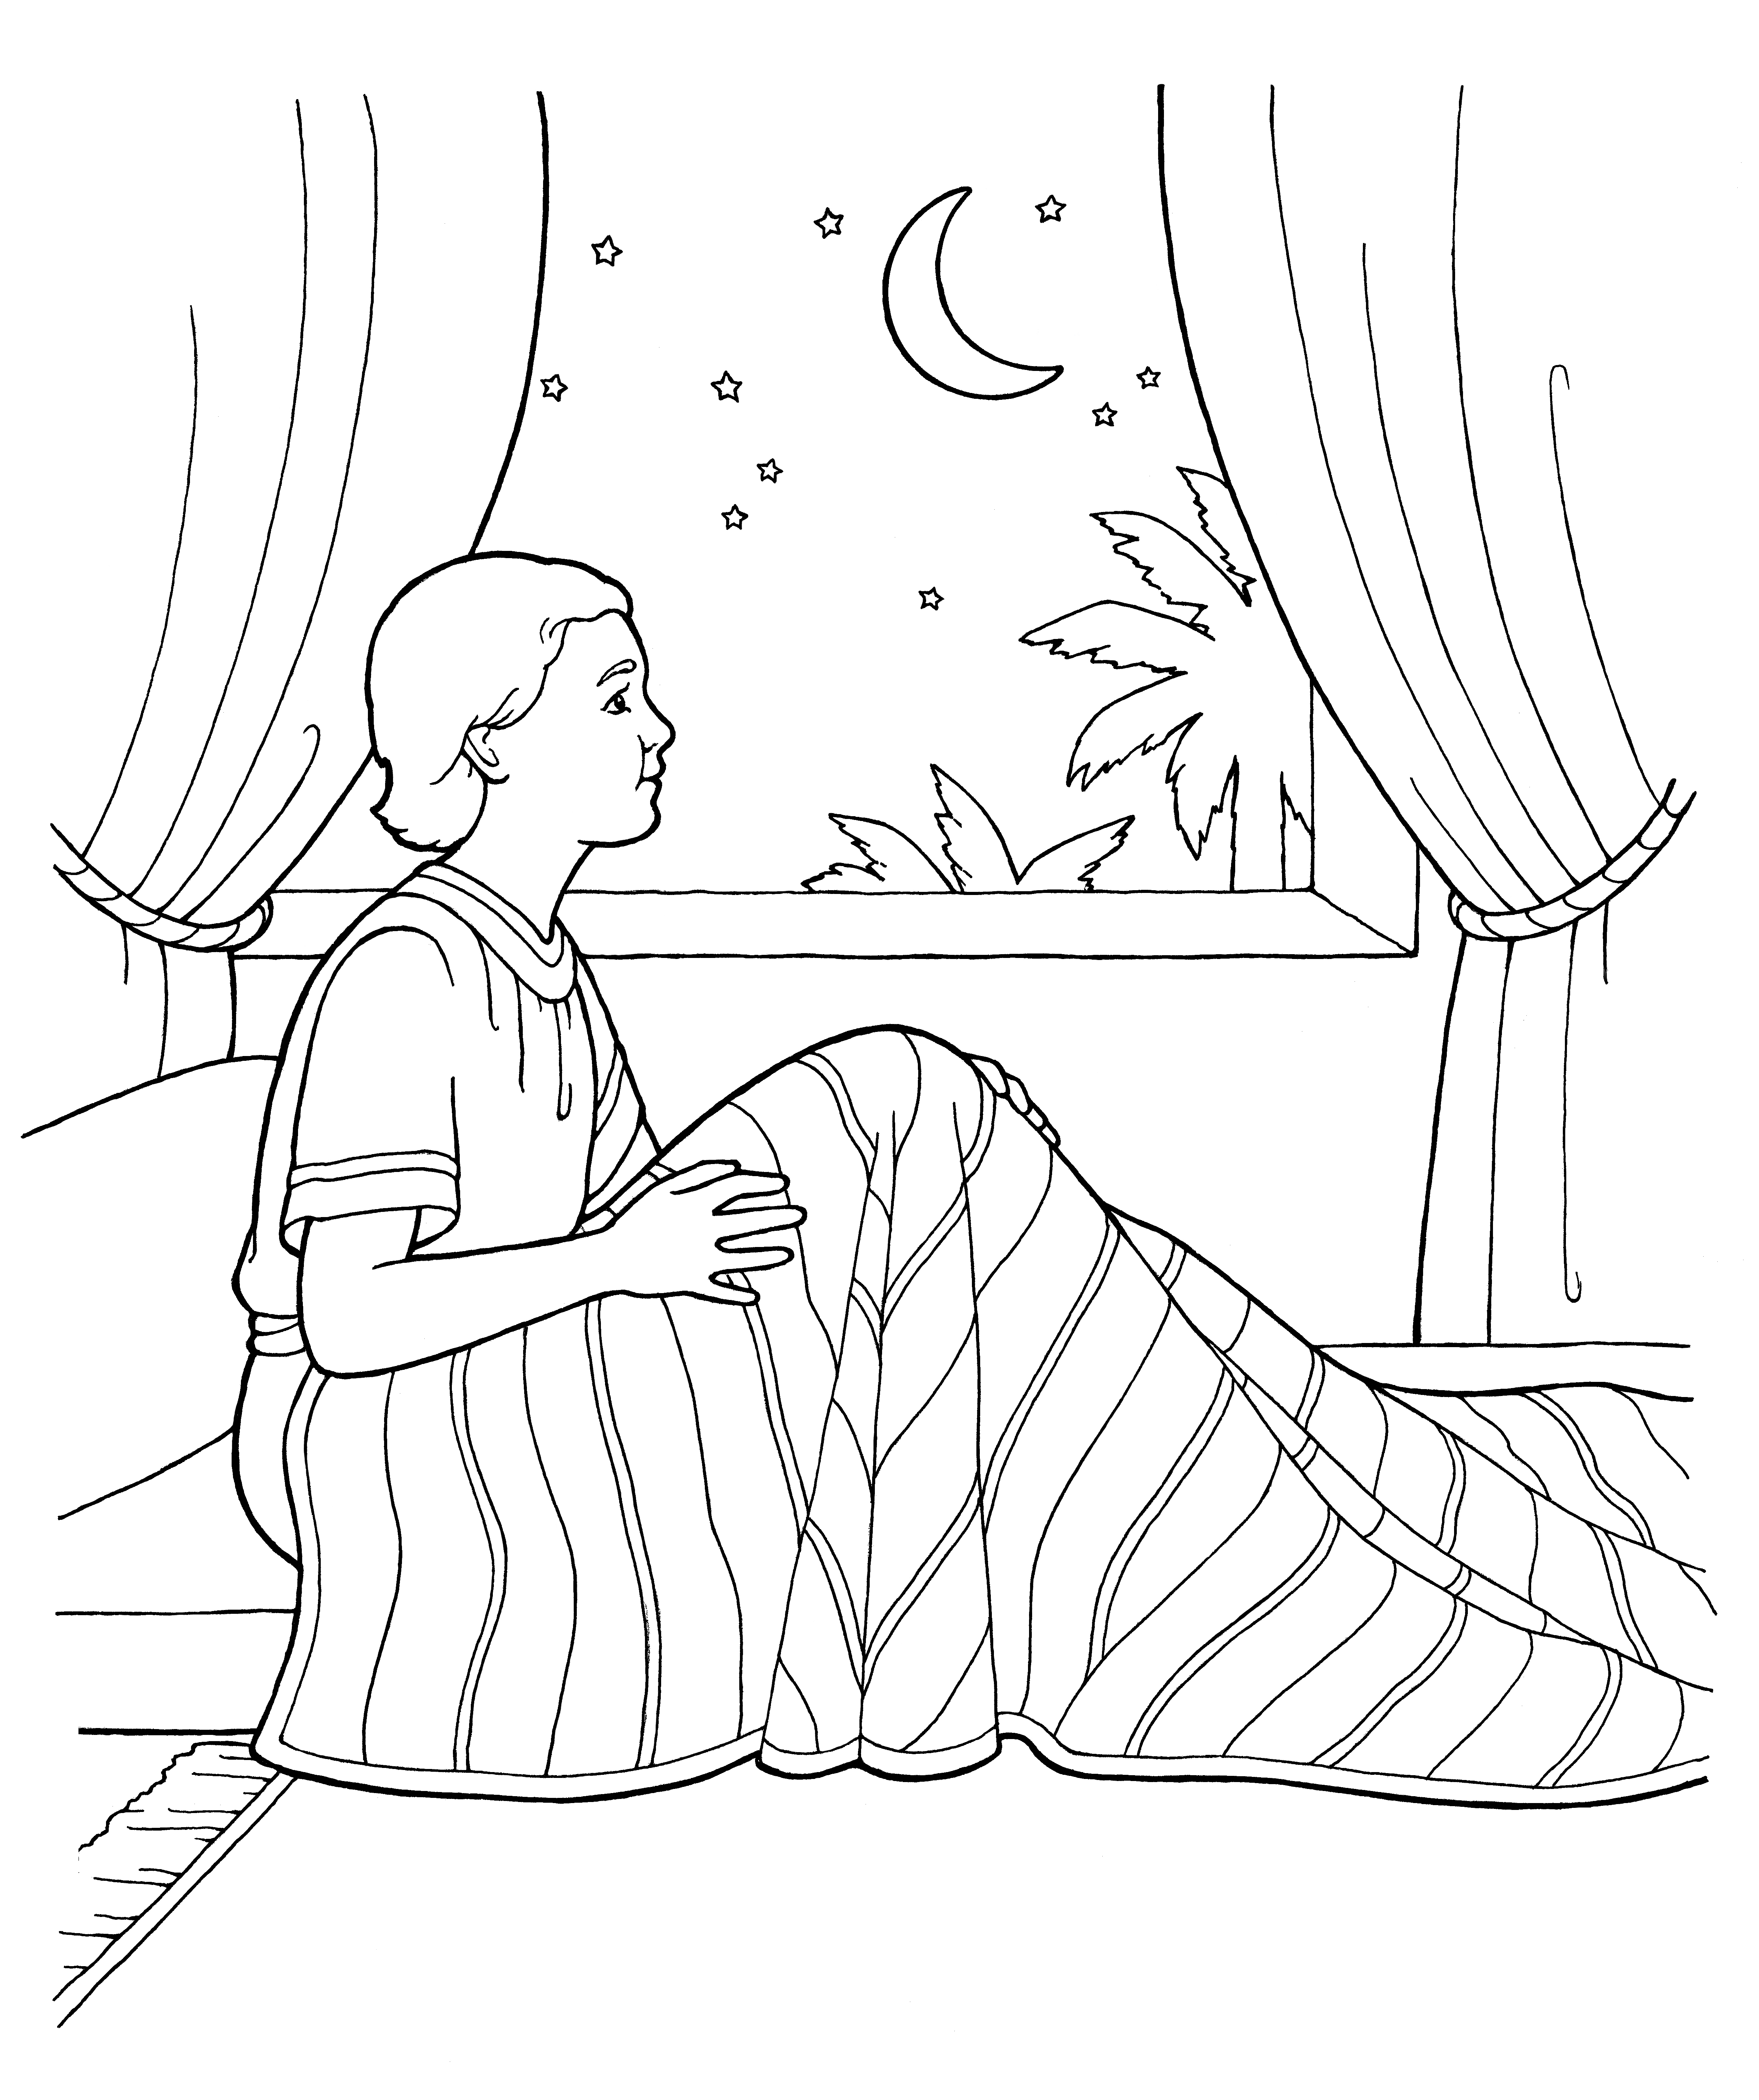 An illustration of the boy Samuel sitting up in bed.